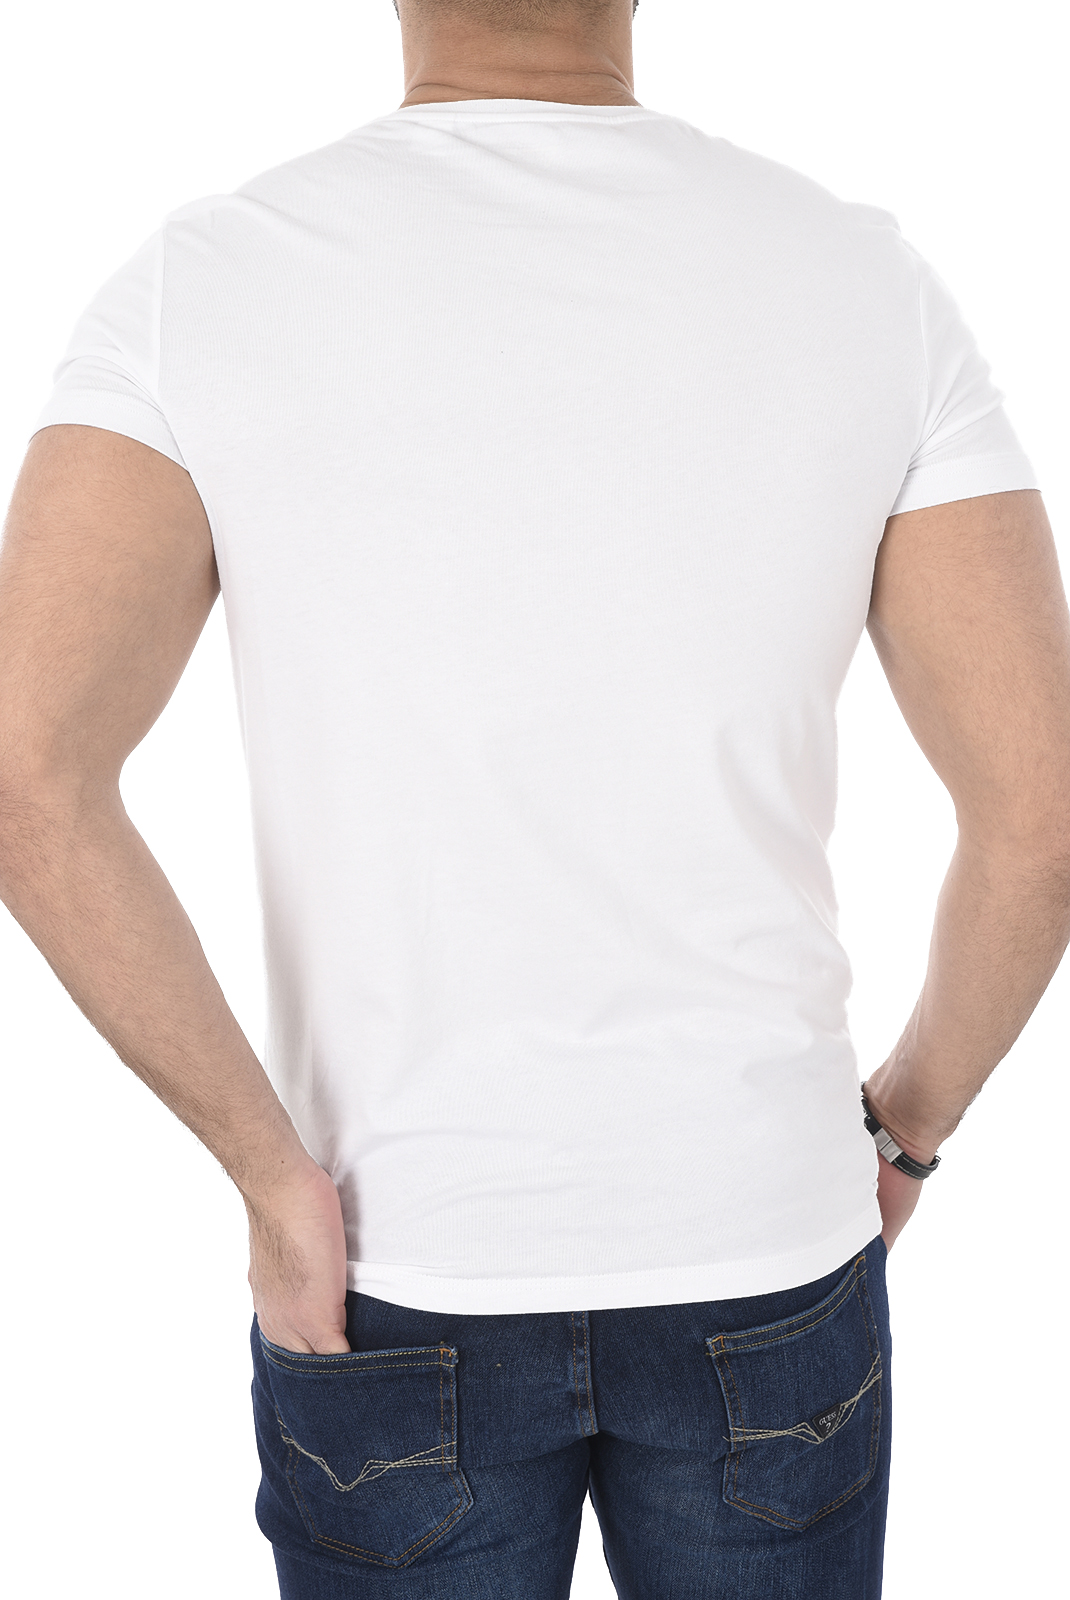 Tee-shirts manches courtes  Guess jeans U77G13 JR003 A009 OPTIC WHITE